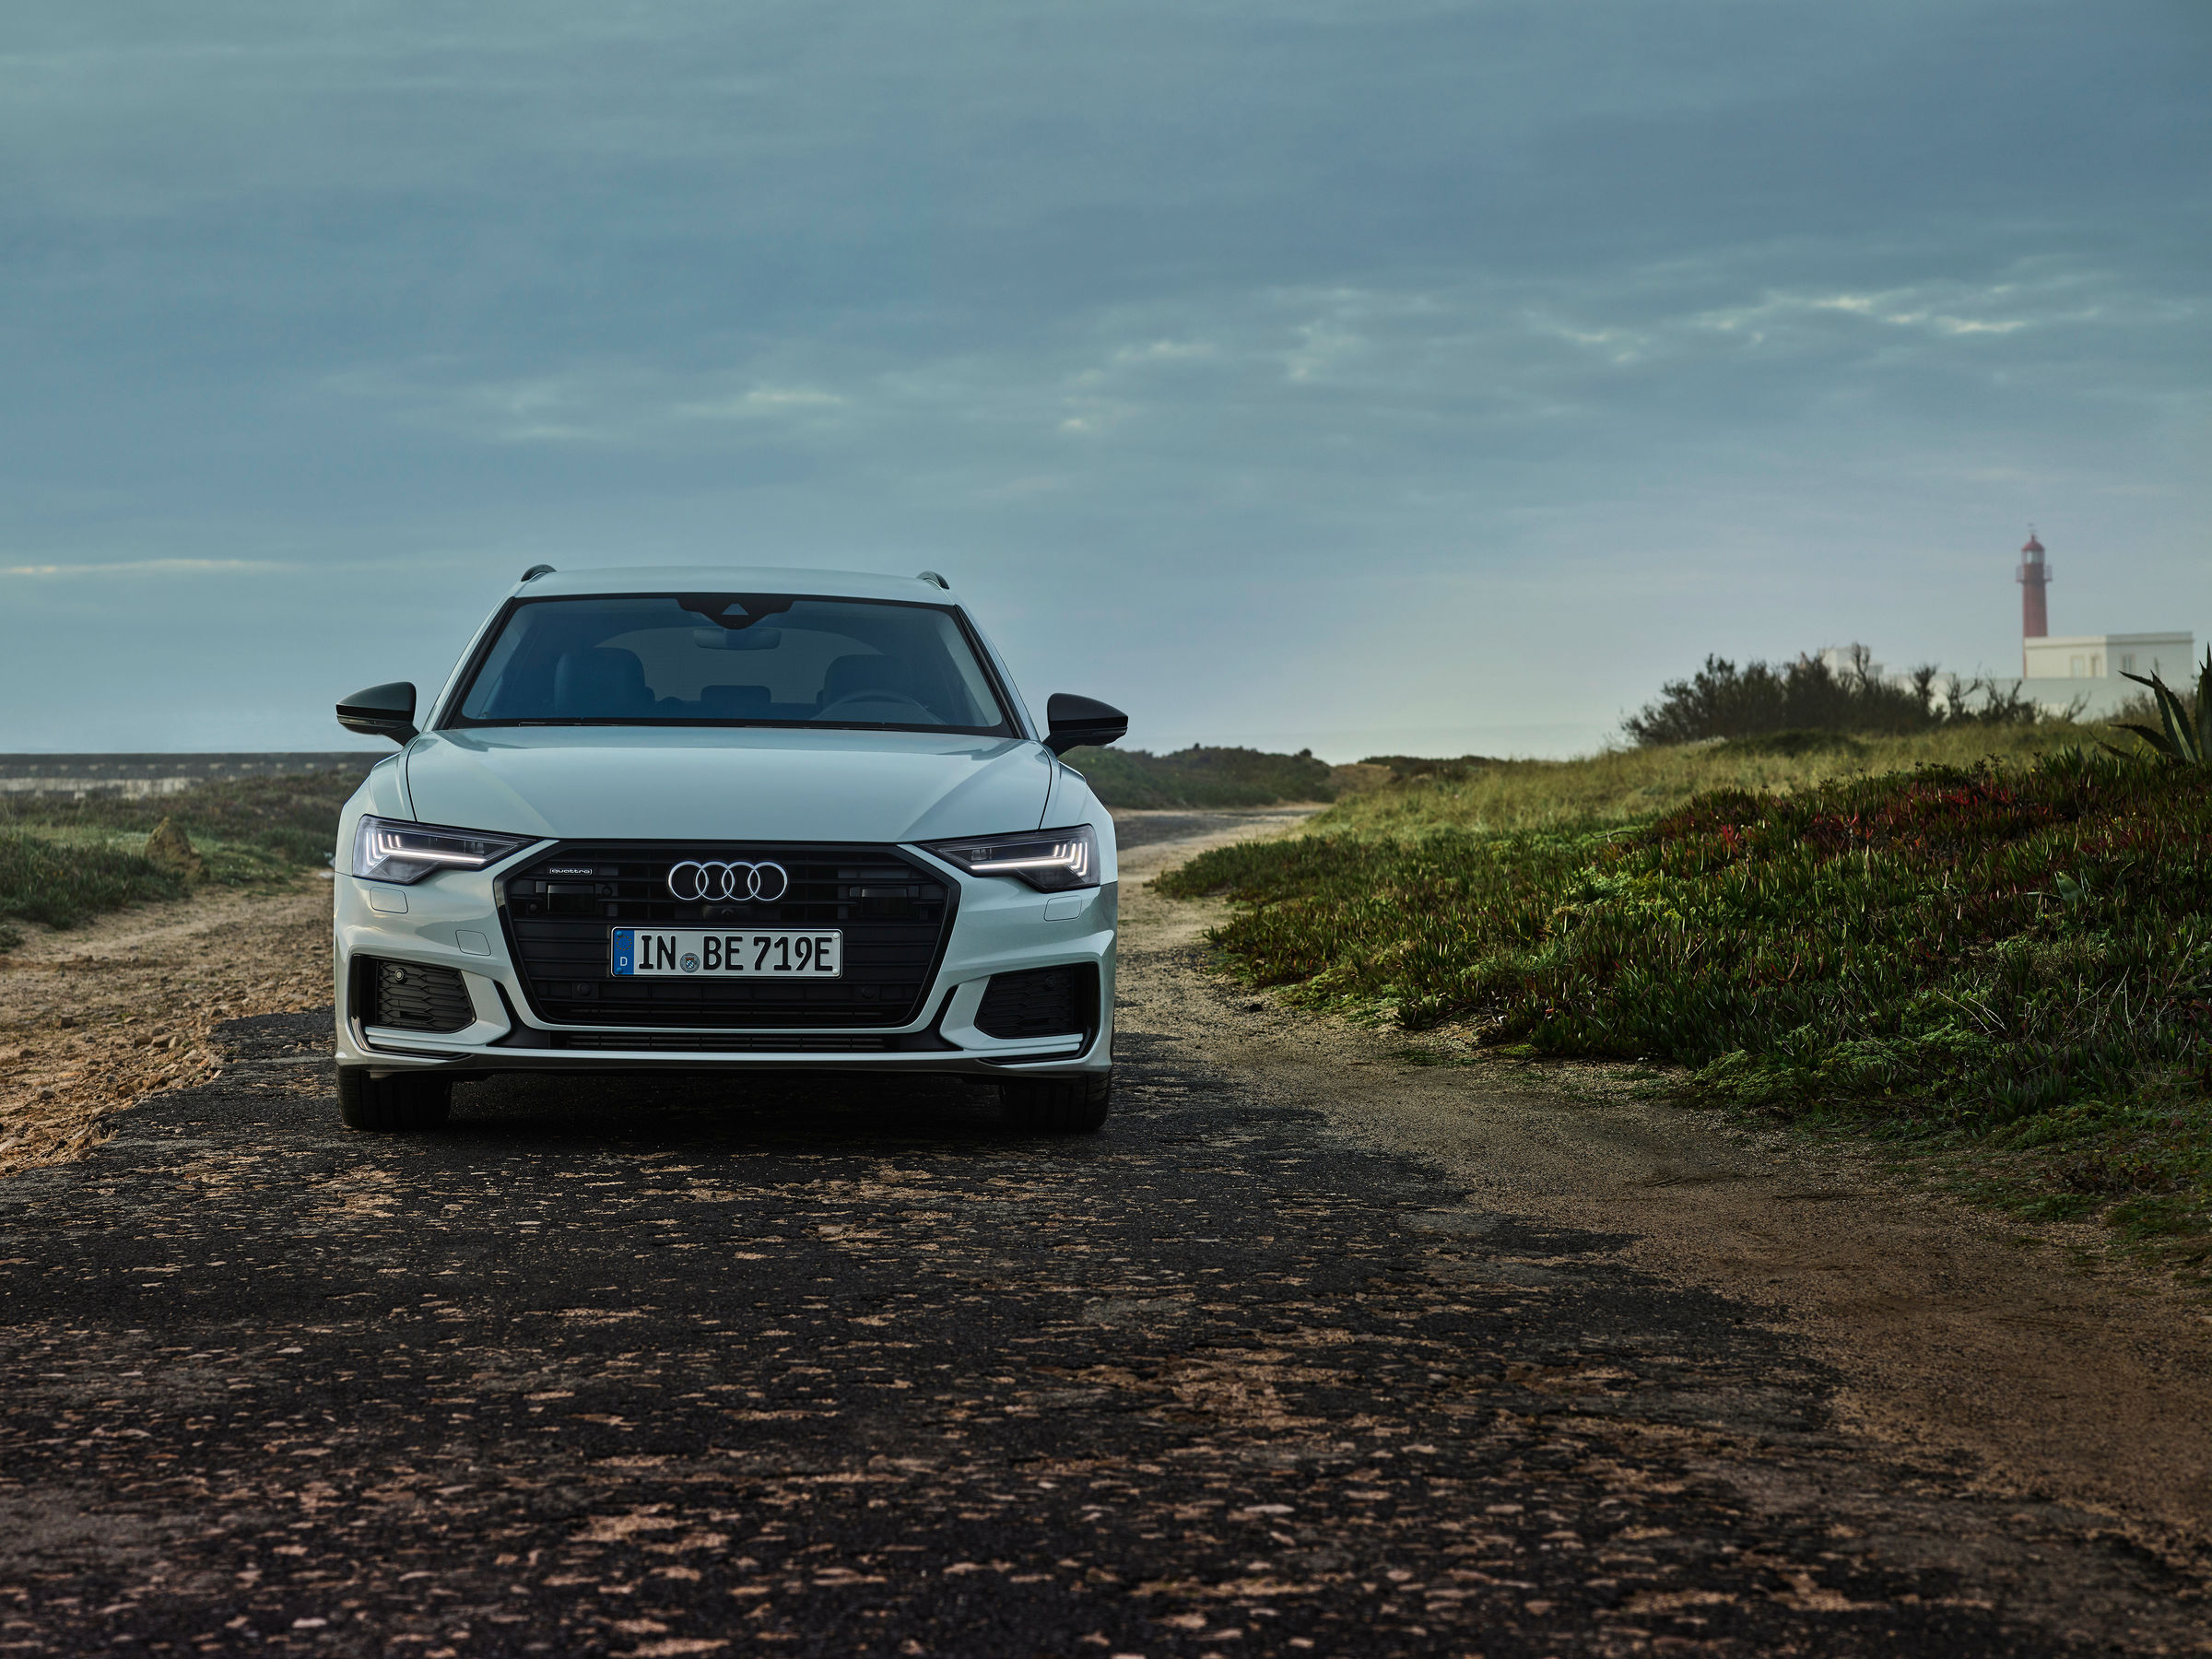 Audi full-size station wagon now as a plug-in hybrid: the new A6 Avant TFSI e quattro - Image 3